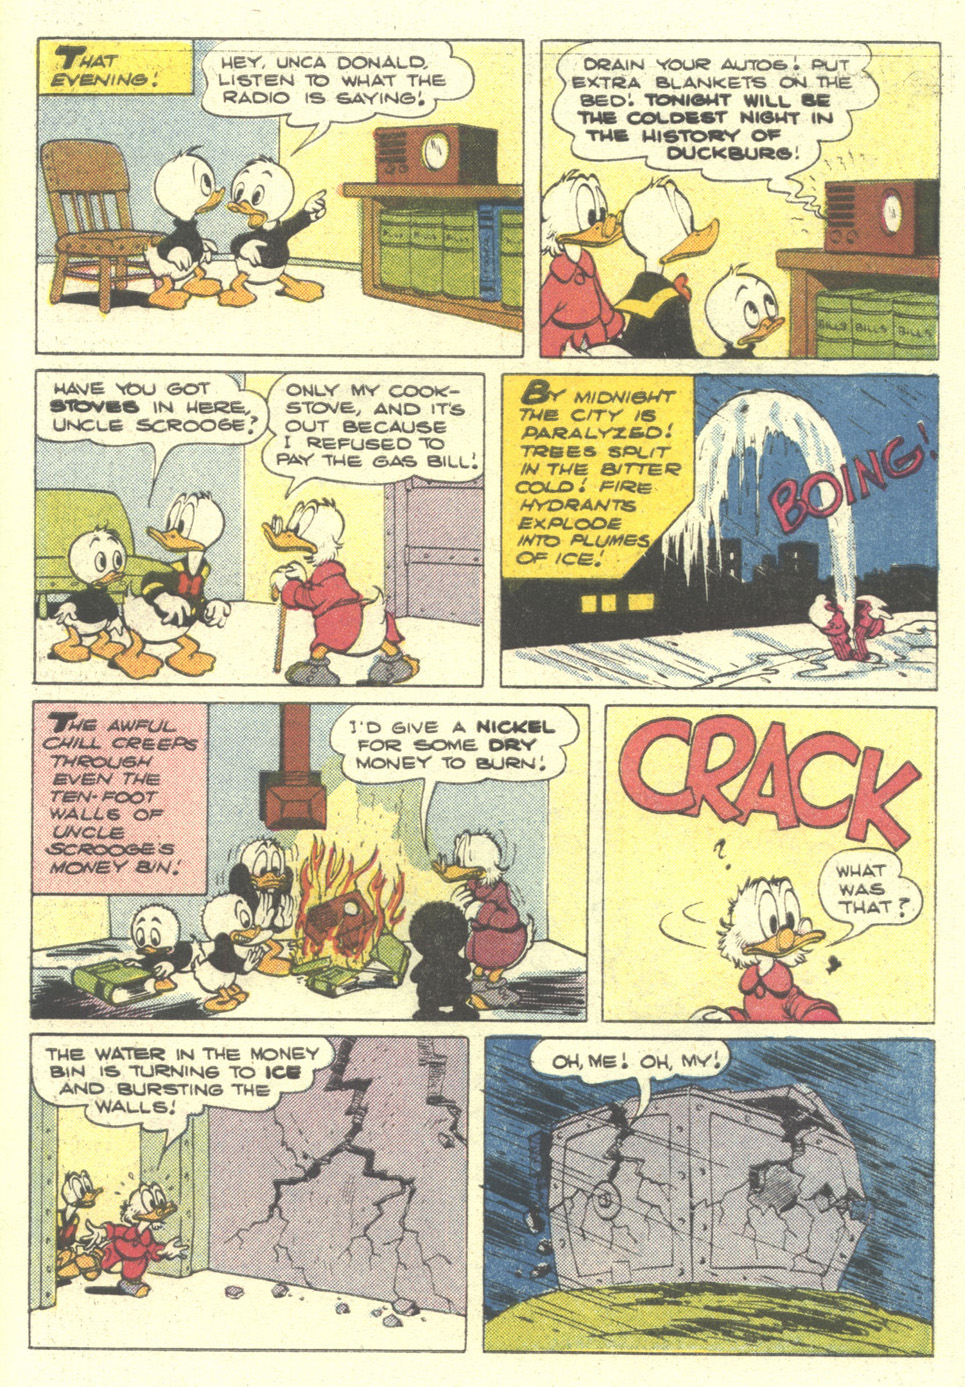 efree.com/uncle-scrooge-1 #193 - English 31